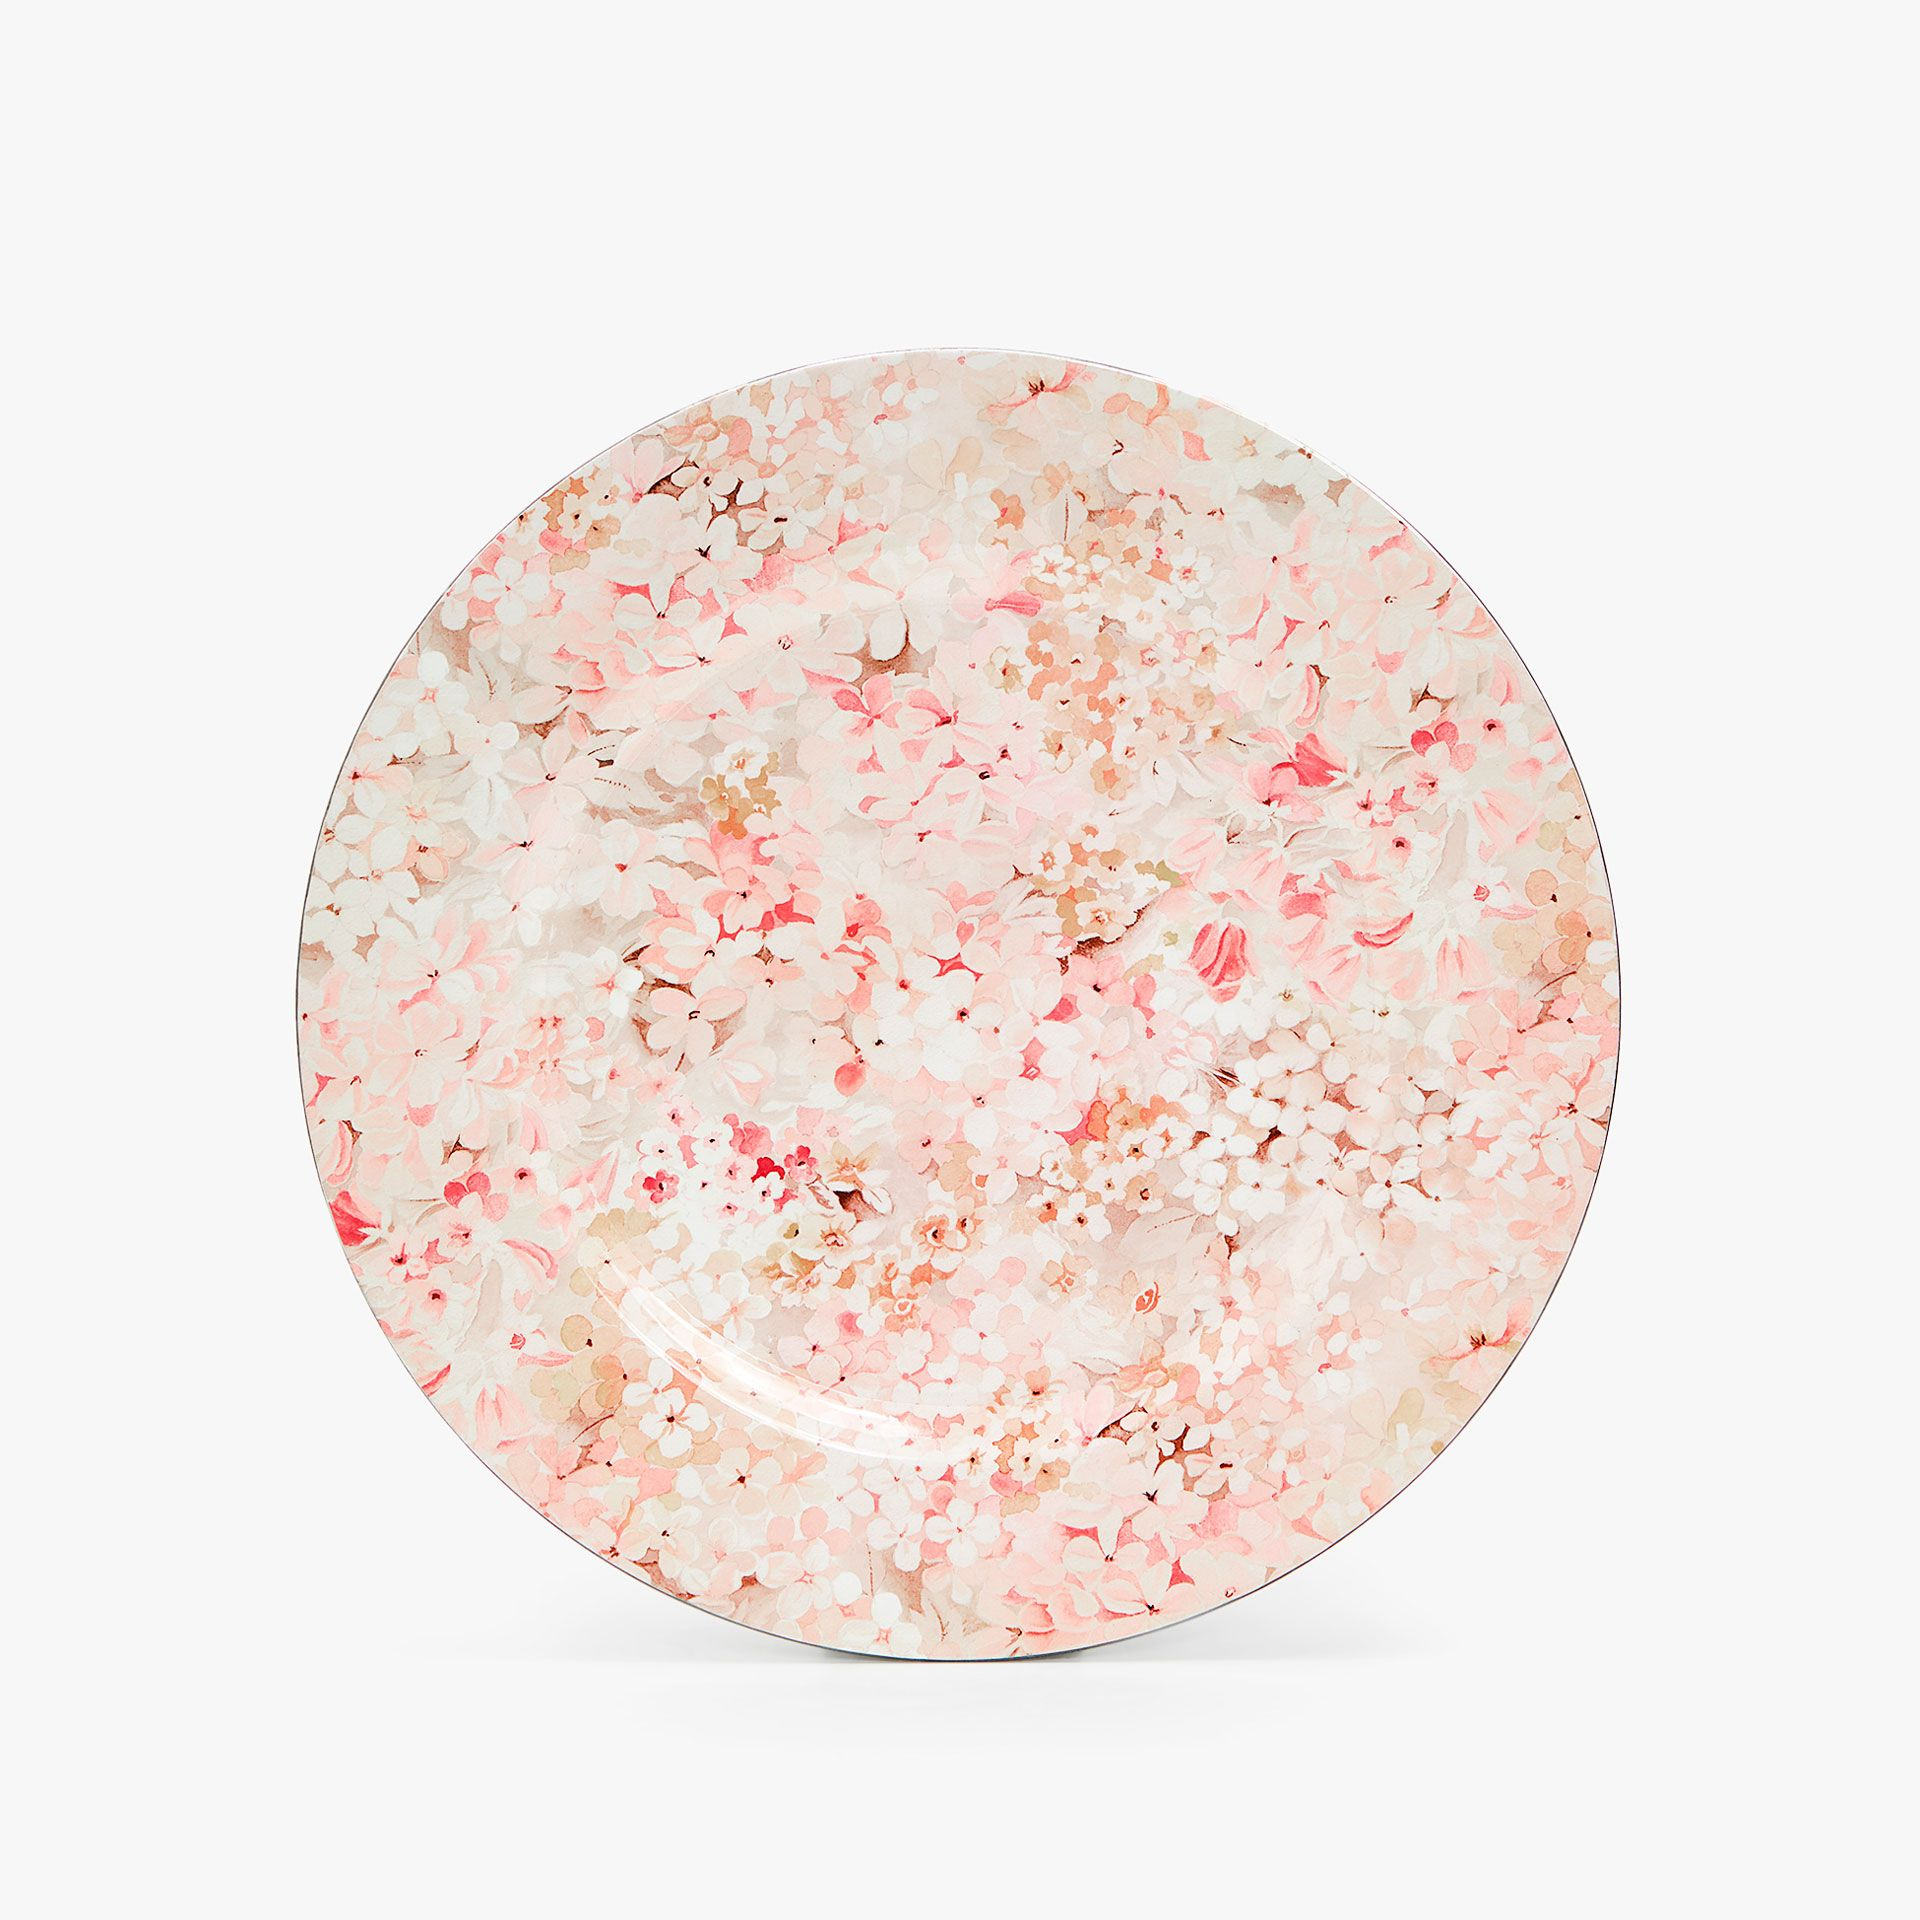 Image 1 of the product MINI FLORAL PRINT CHARGER PLATE